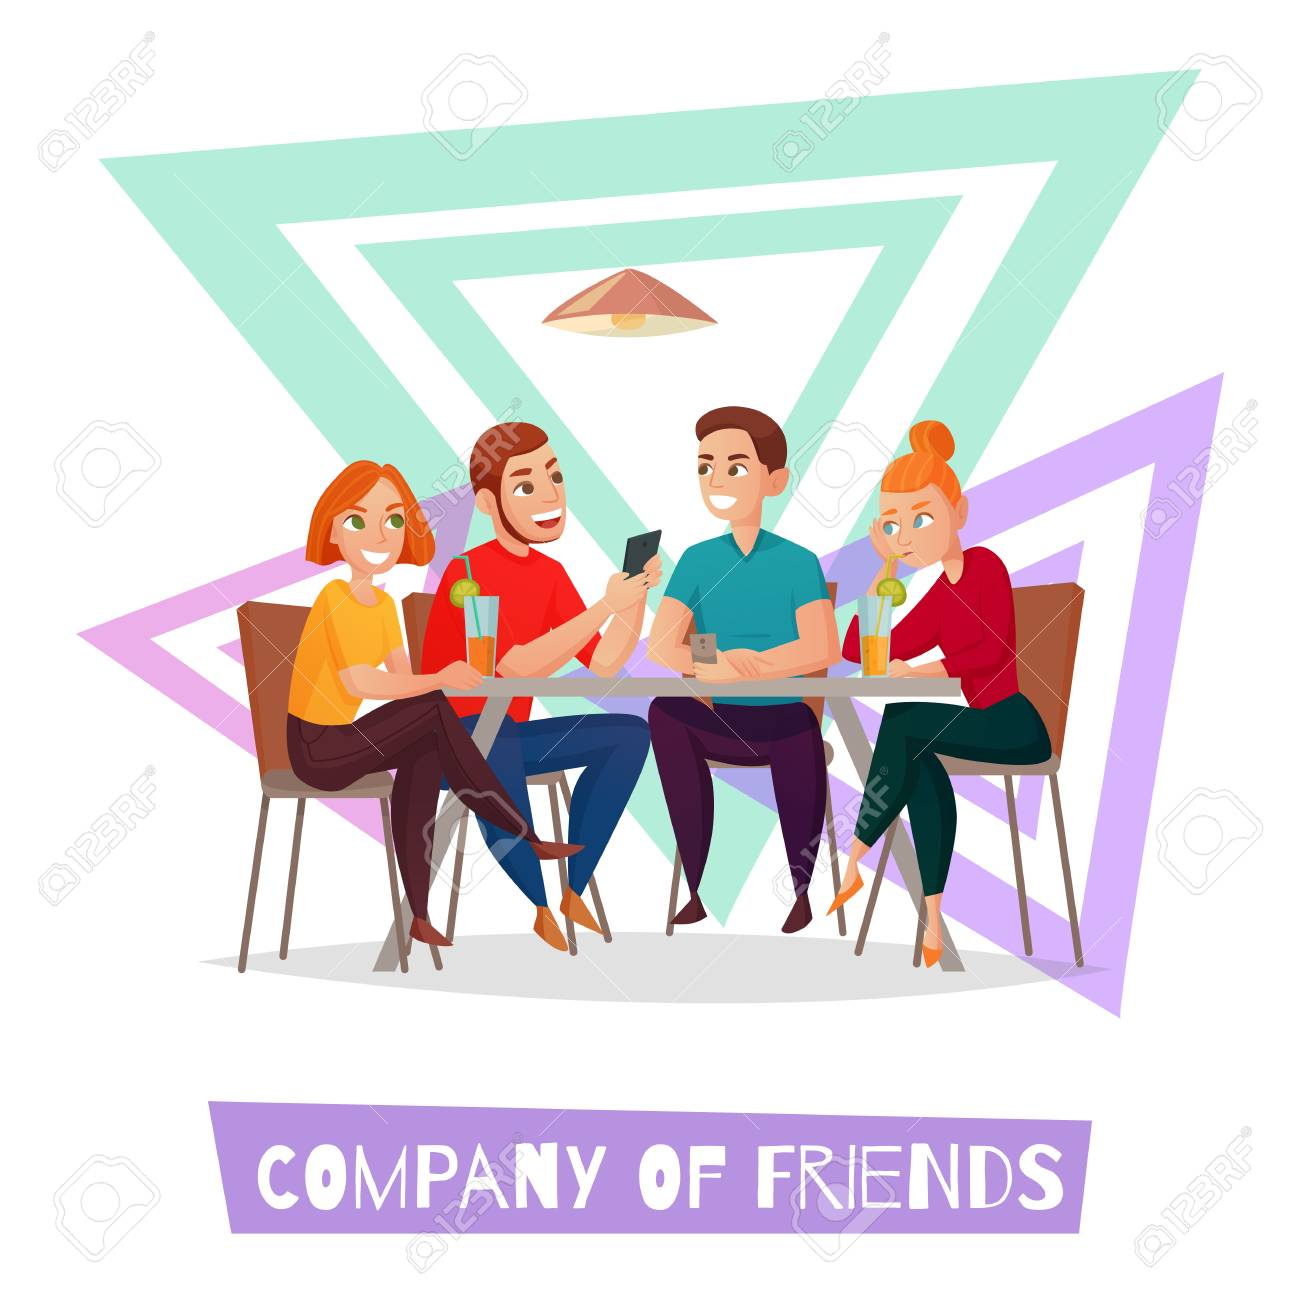 Colored isolated restaurant pub visitors simple composition with company of friends description vector illustration - 101912172